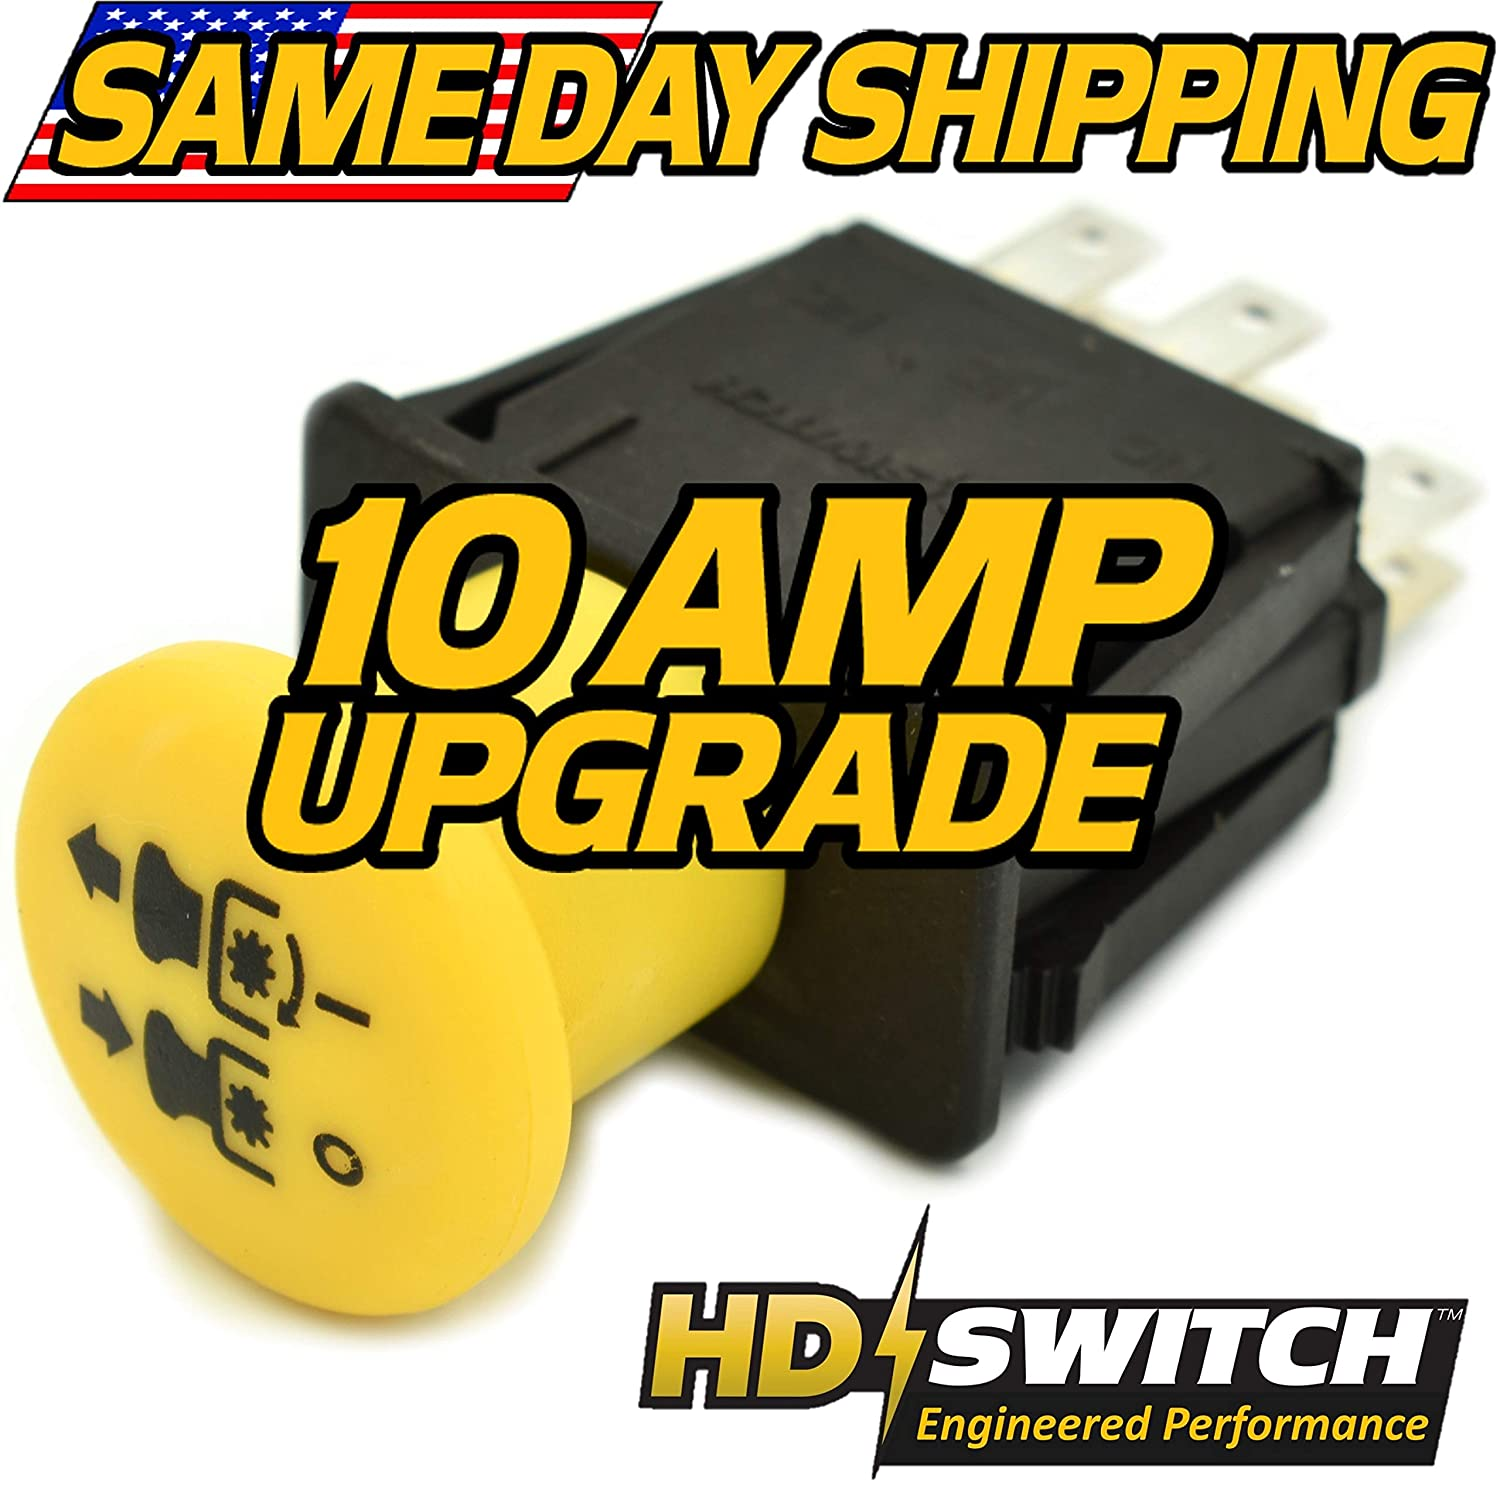 Cub Cadet Tractor PTO Switch - GT1554 GT2554 - LT1018 LT1022 LT1024 LT1042 LT1045 LT1046 – SLT1550 SLT1554 – New Improved Design – HD Switch